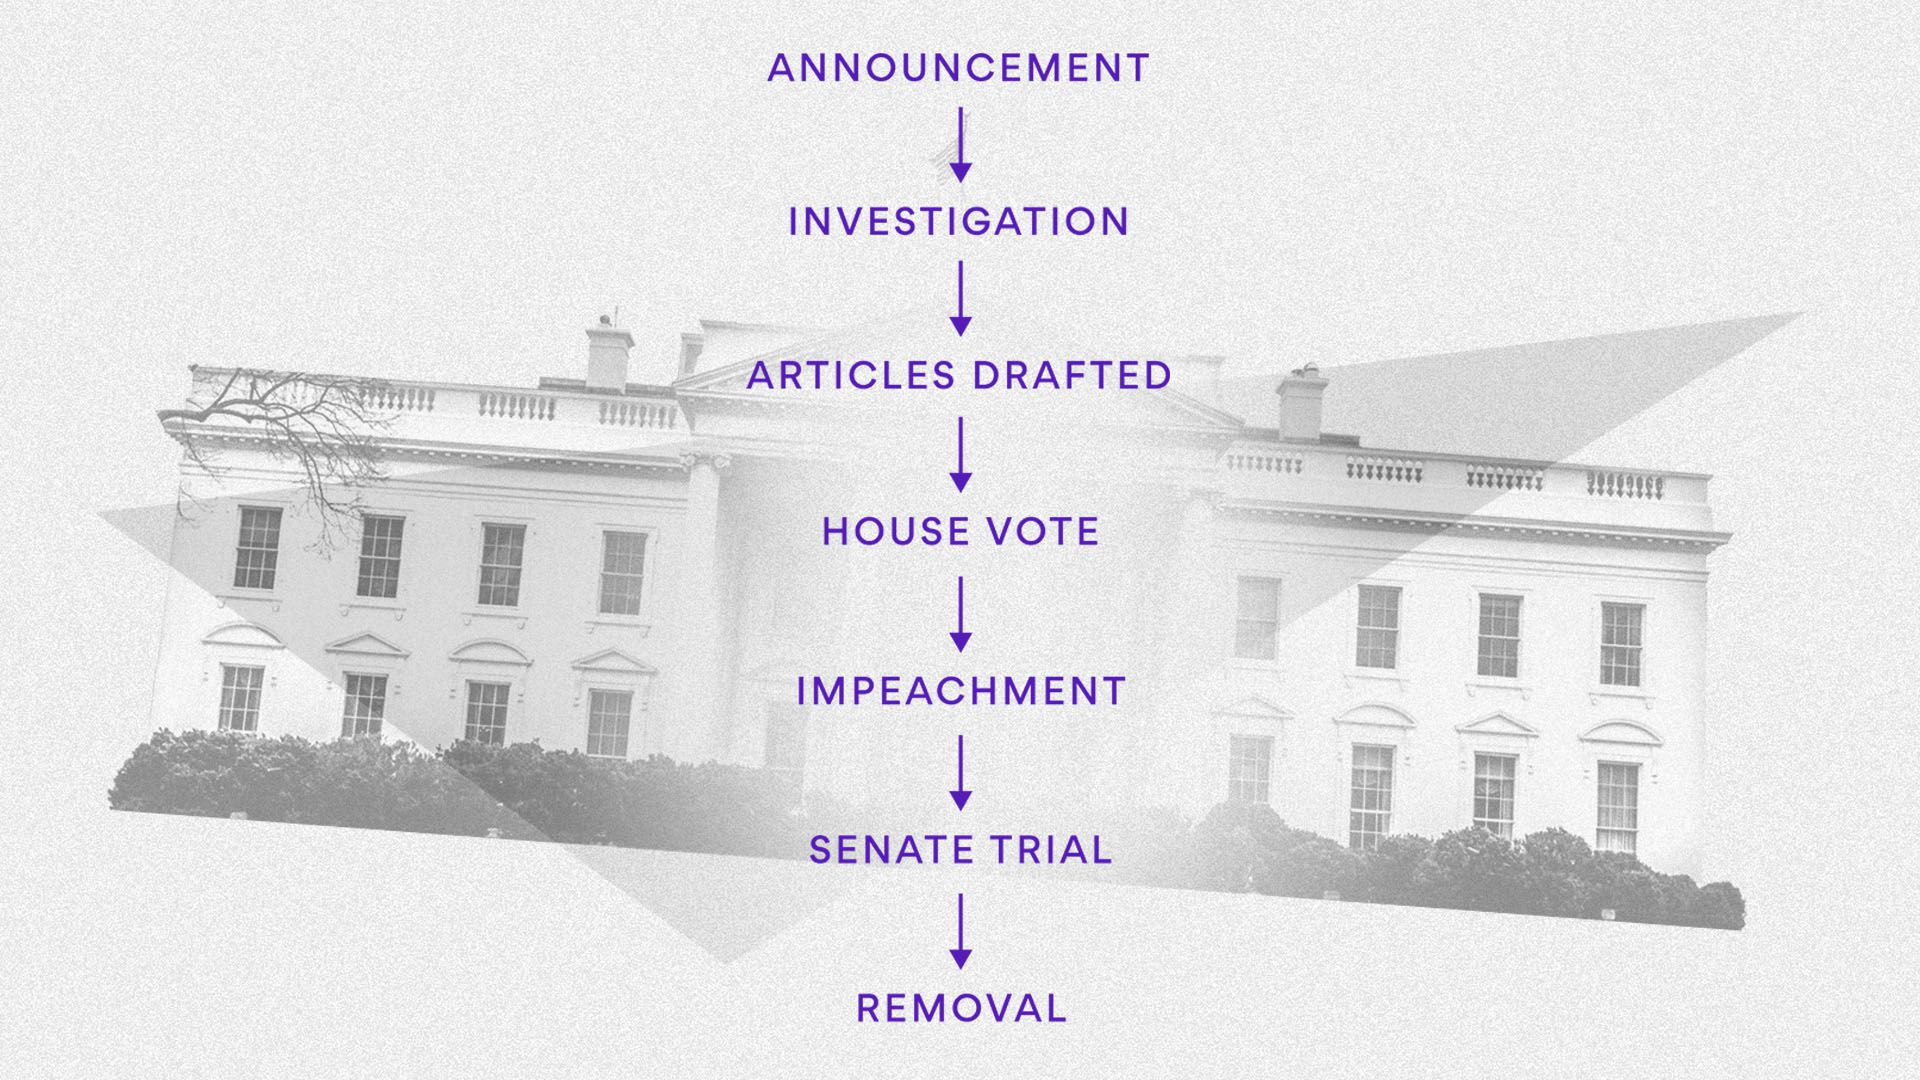 Diagram of the typical process for impeachment over an image of the Whitehouse